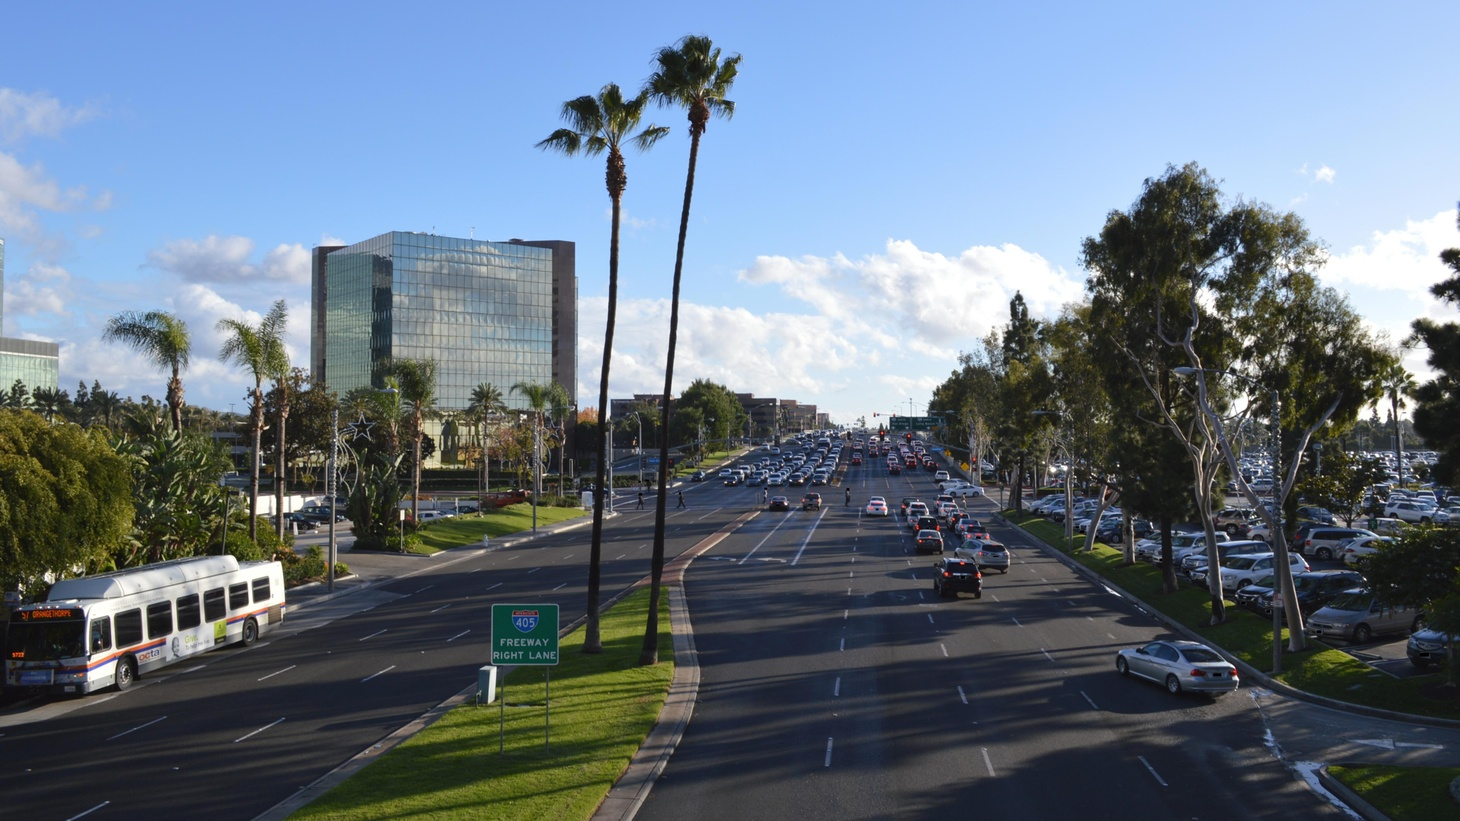 Westward view of Bristol Street as seen from the Unity Bridge of South Coast Plaza in Costa Mesa, California.